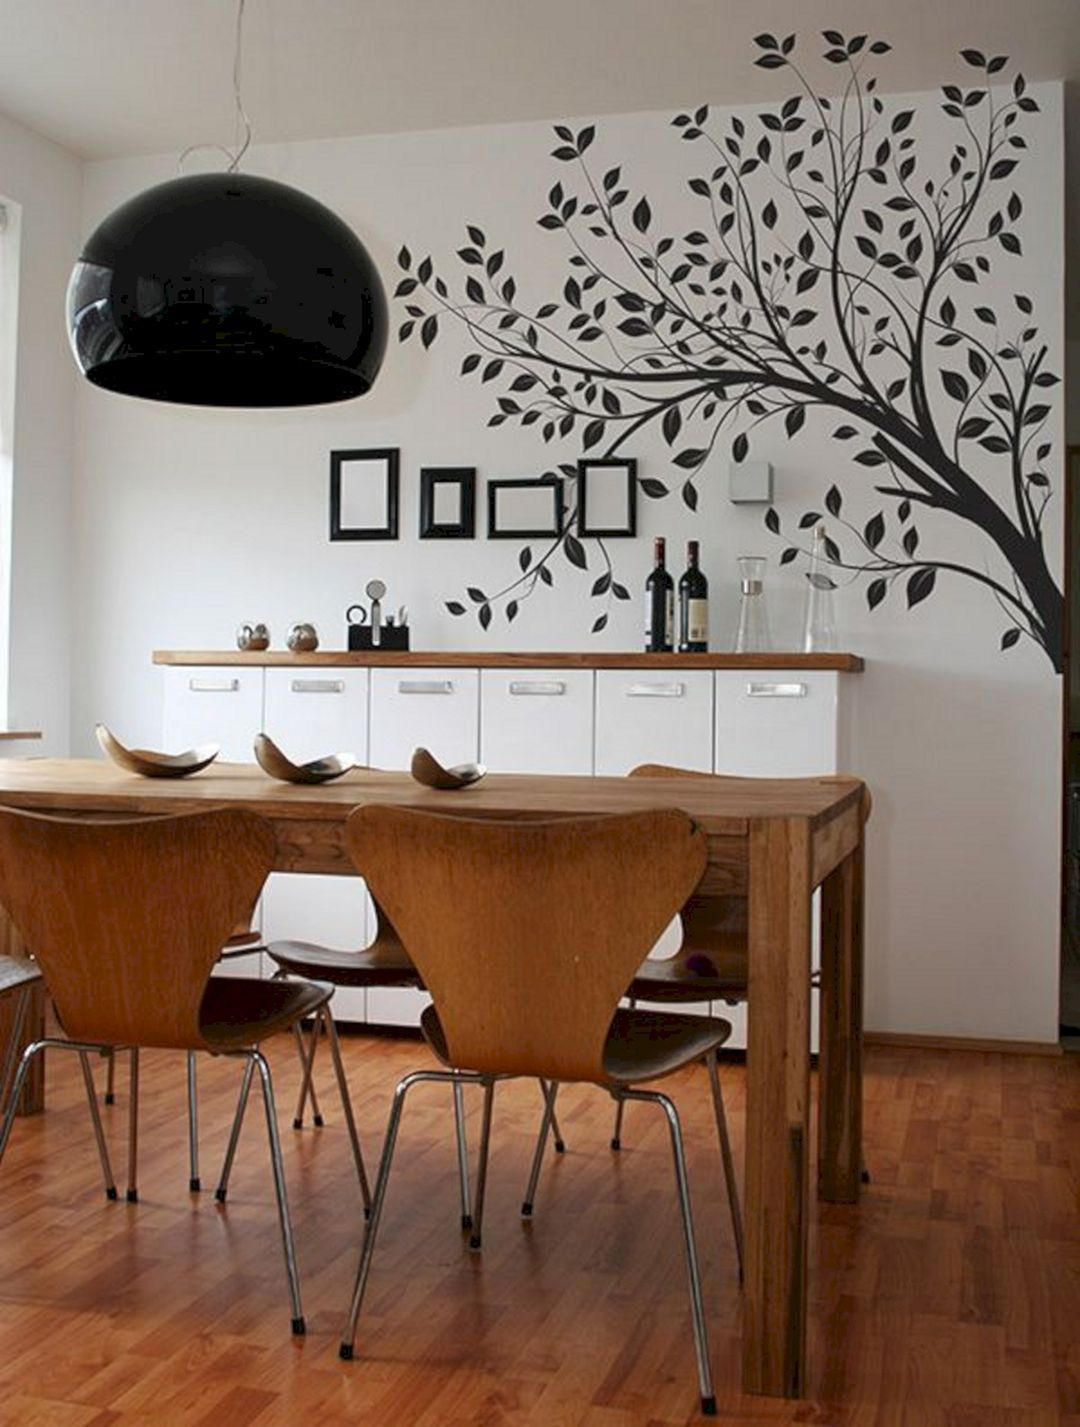 Epic 25 Most Inspiring Dining Room Wall Decal Ideas That You Need To Copy Https Freshouz Dining Room Decor Dining Room Colour Schemes Dining Room Wall Decor